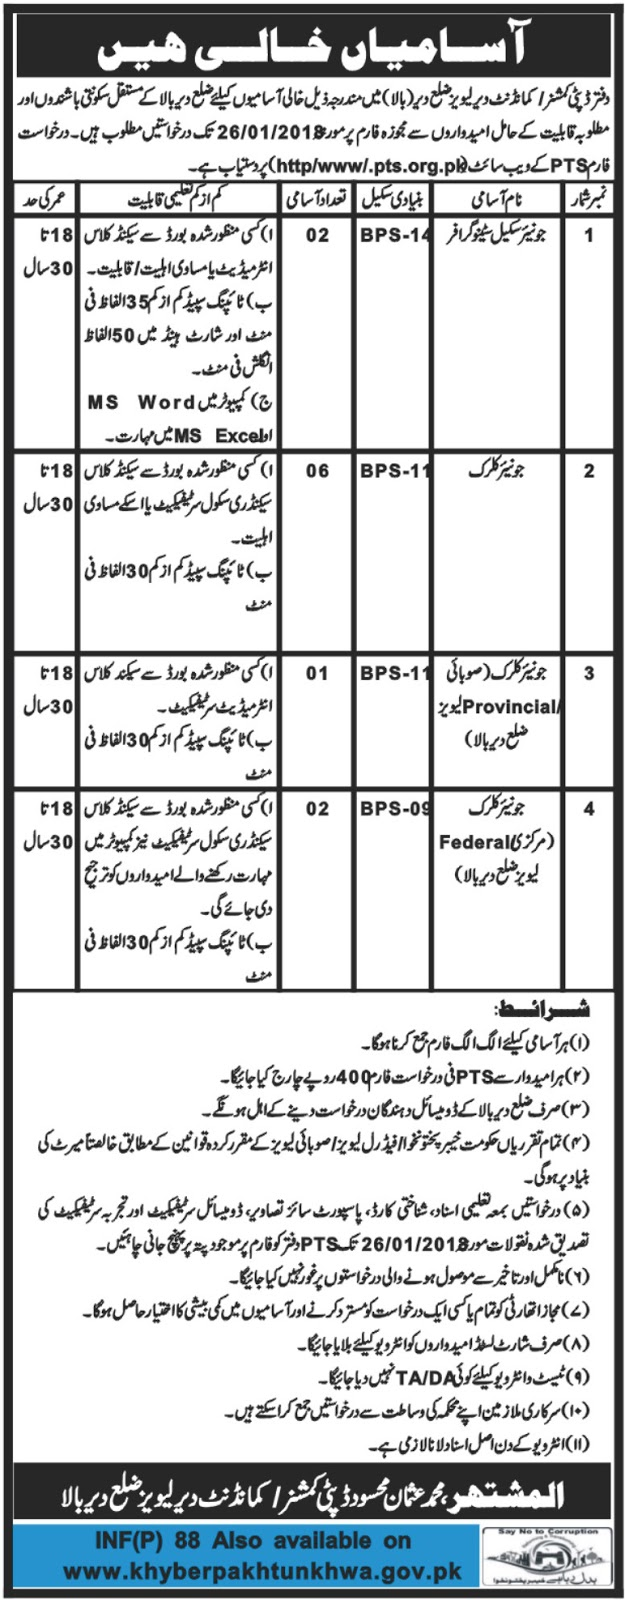 Government Jobs in Office of The Deputy Commissioner Through PTS Jan 2018